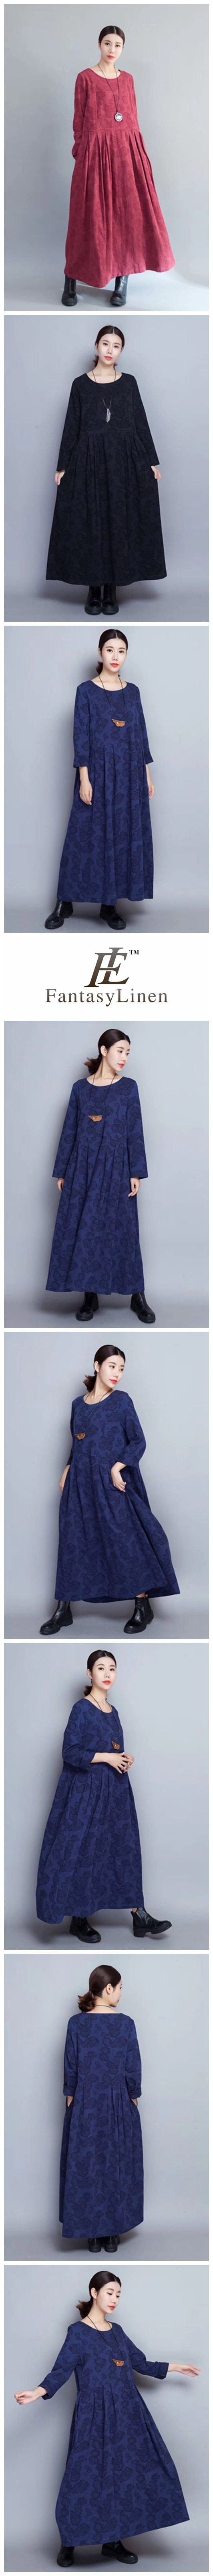 Flower Long Sleeve Casual Maxi Dresses Women Clothes in Blue 8007 8007Blue